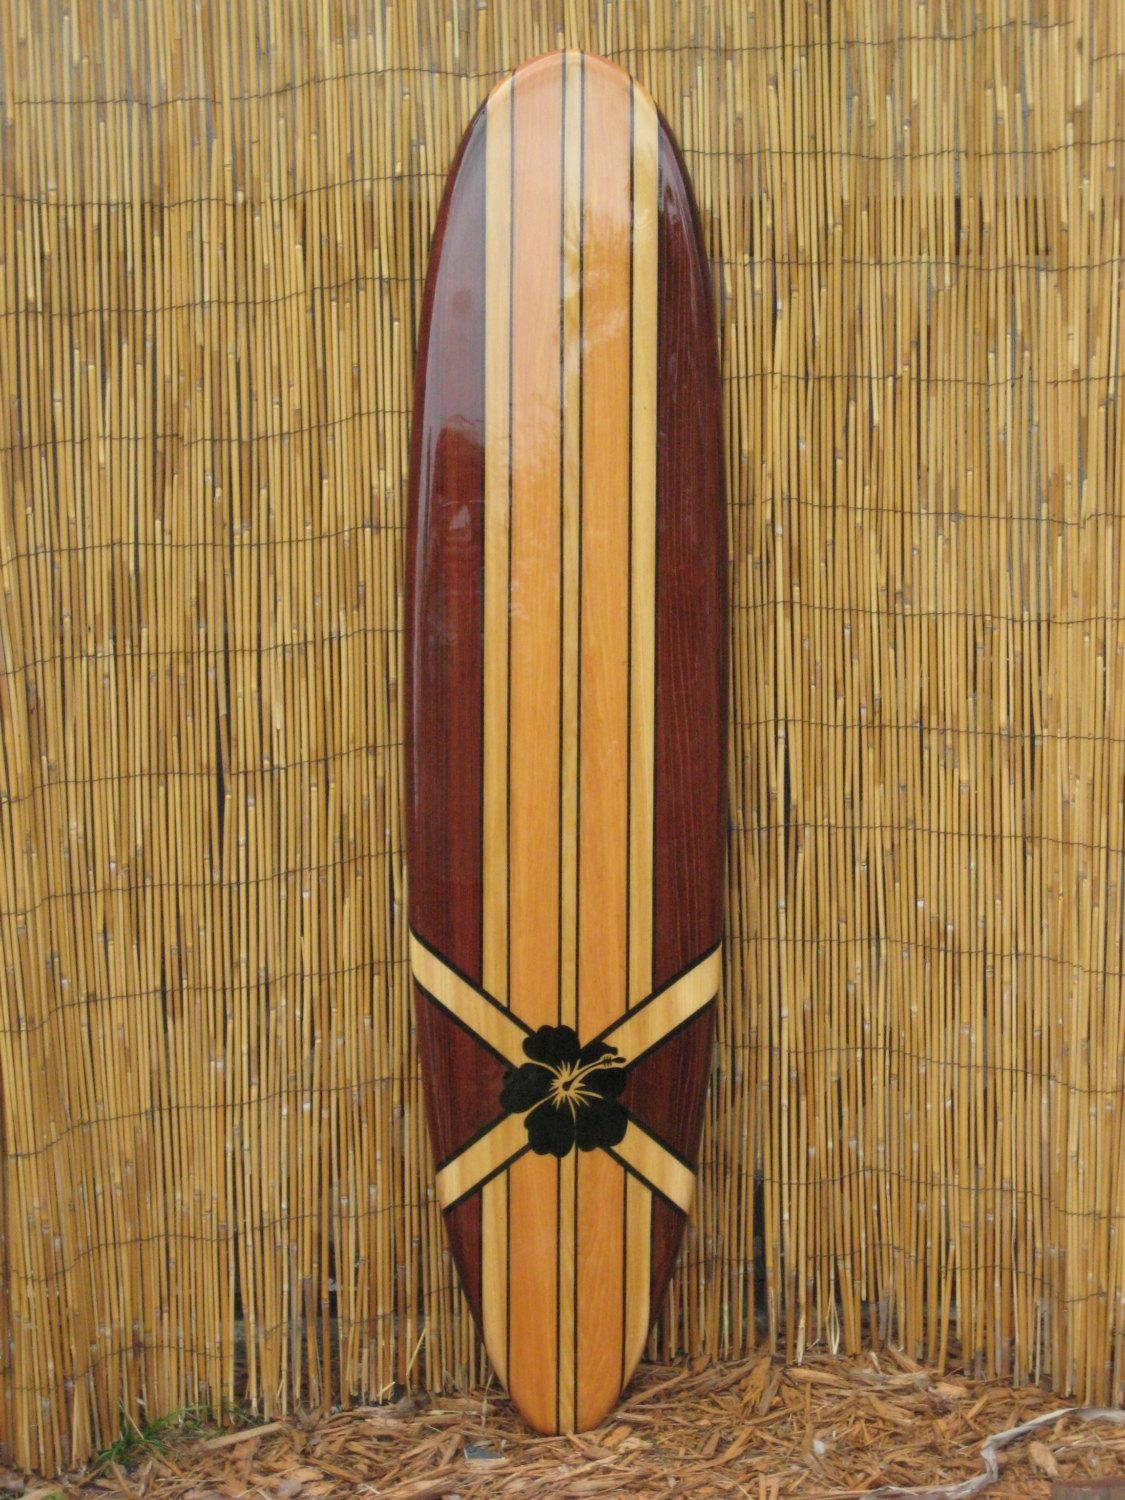 Wooden Decorative Surfboard Wall Art Wall Hanging Or Beach With Regard To Surf Board Wall Art (View 3 of 20)